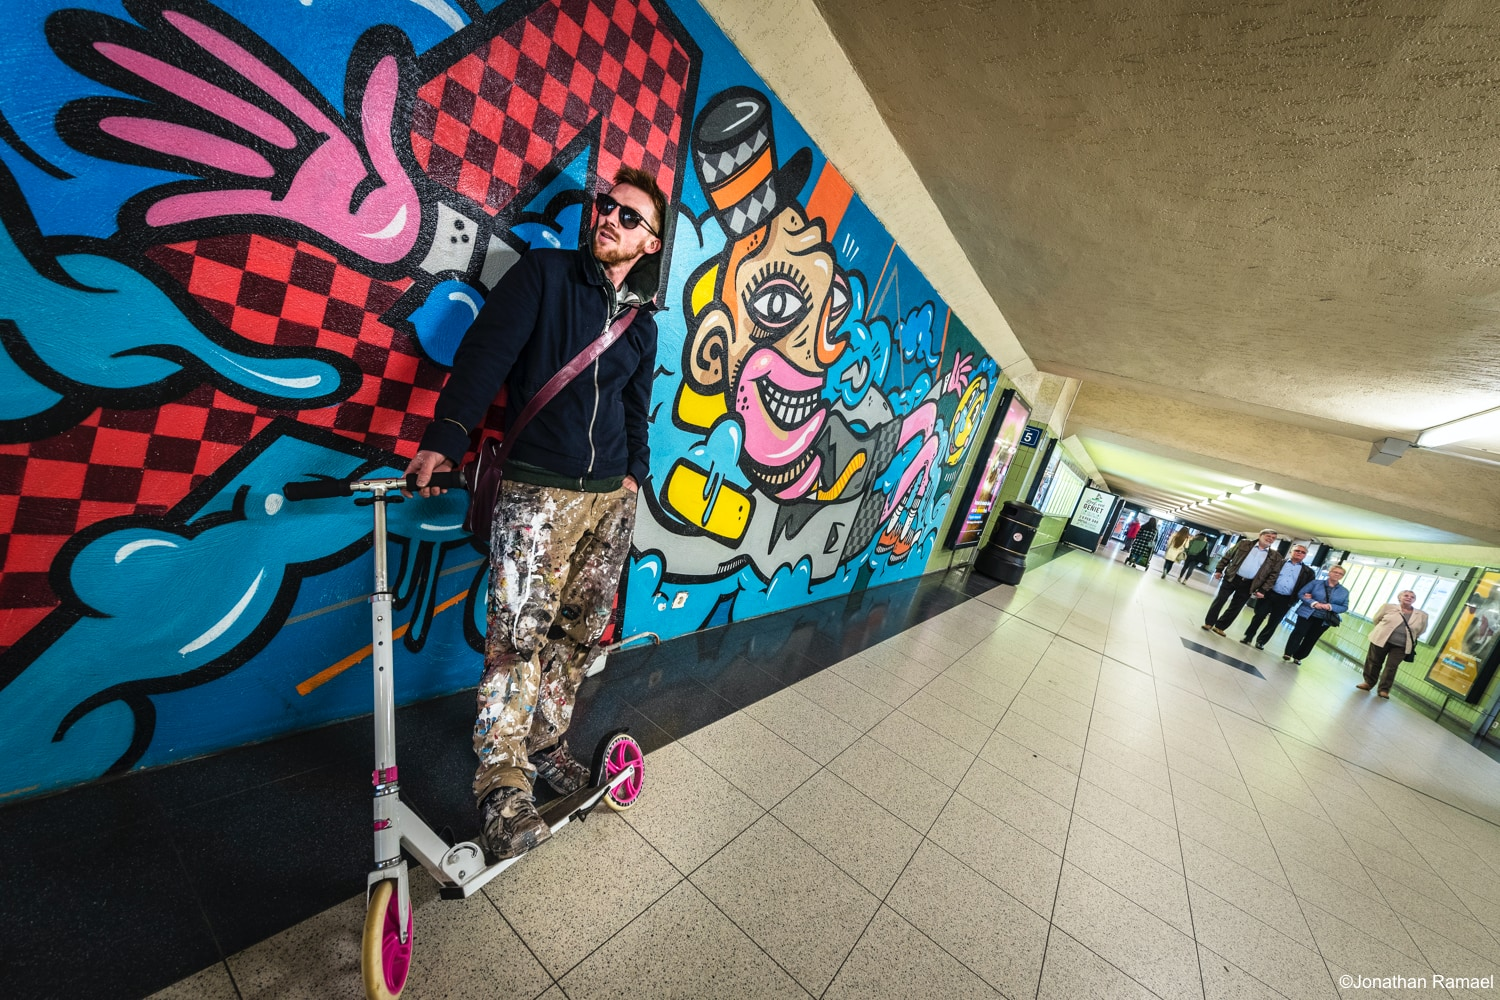 Graffiti-artiest met step voor street art in tunnel station Antwerpen-Berchem